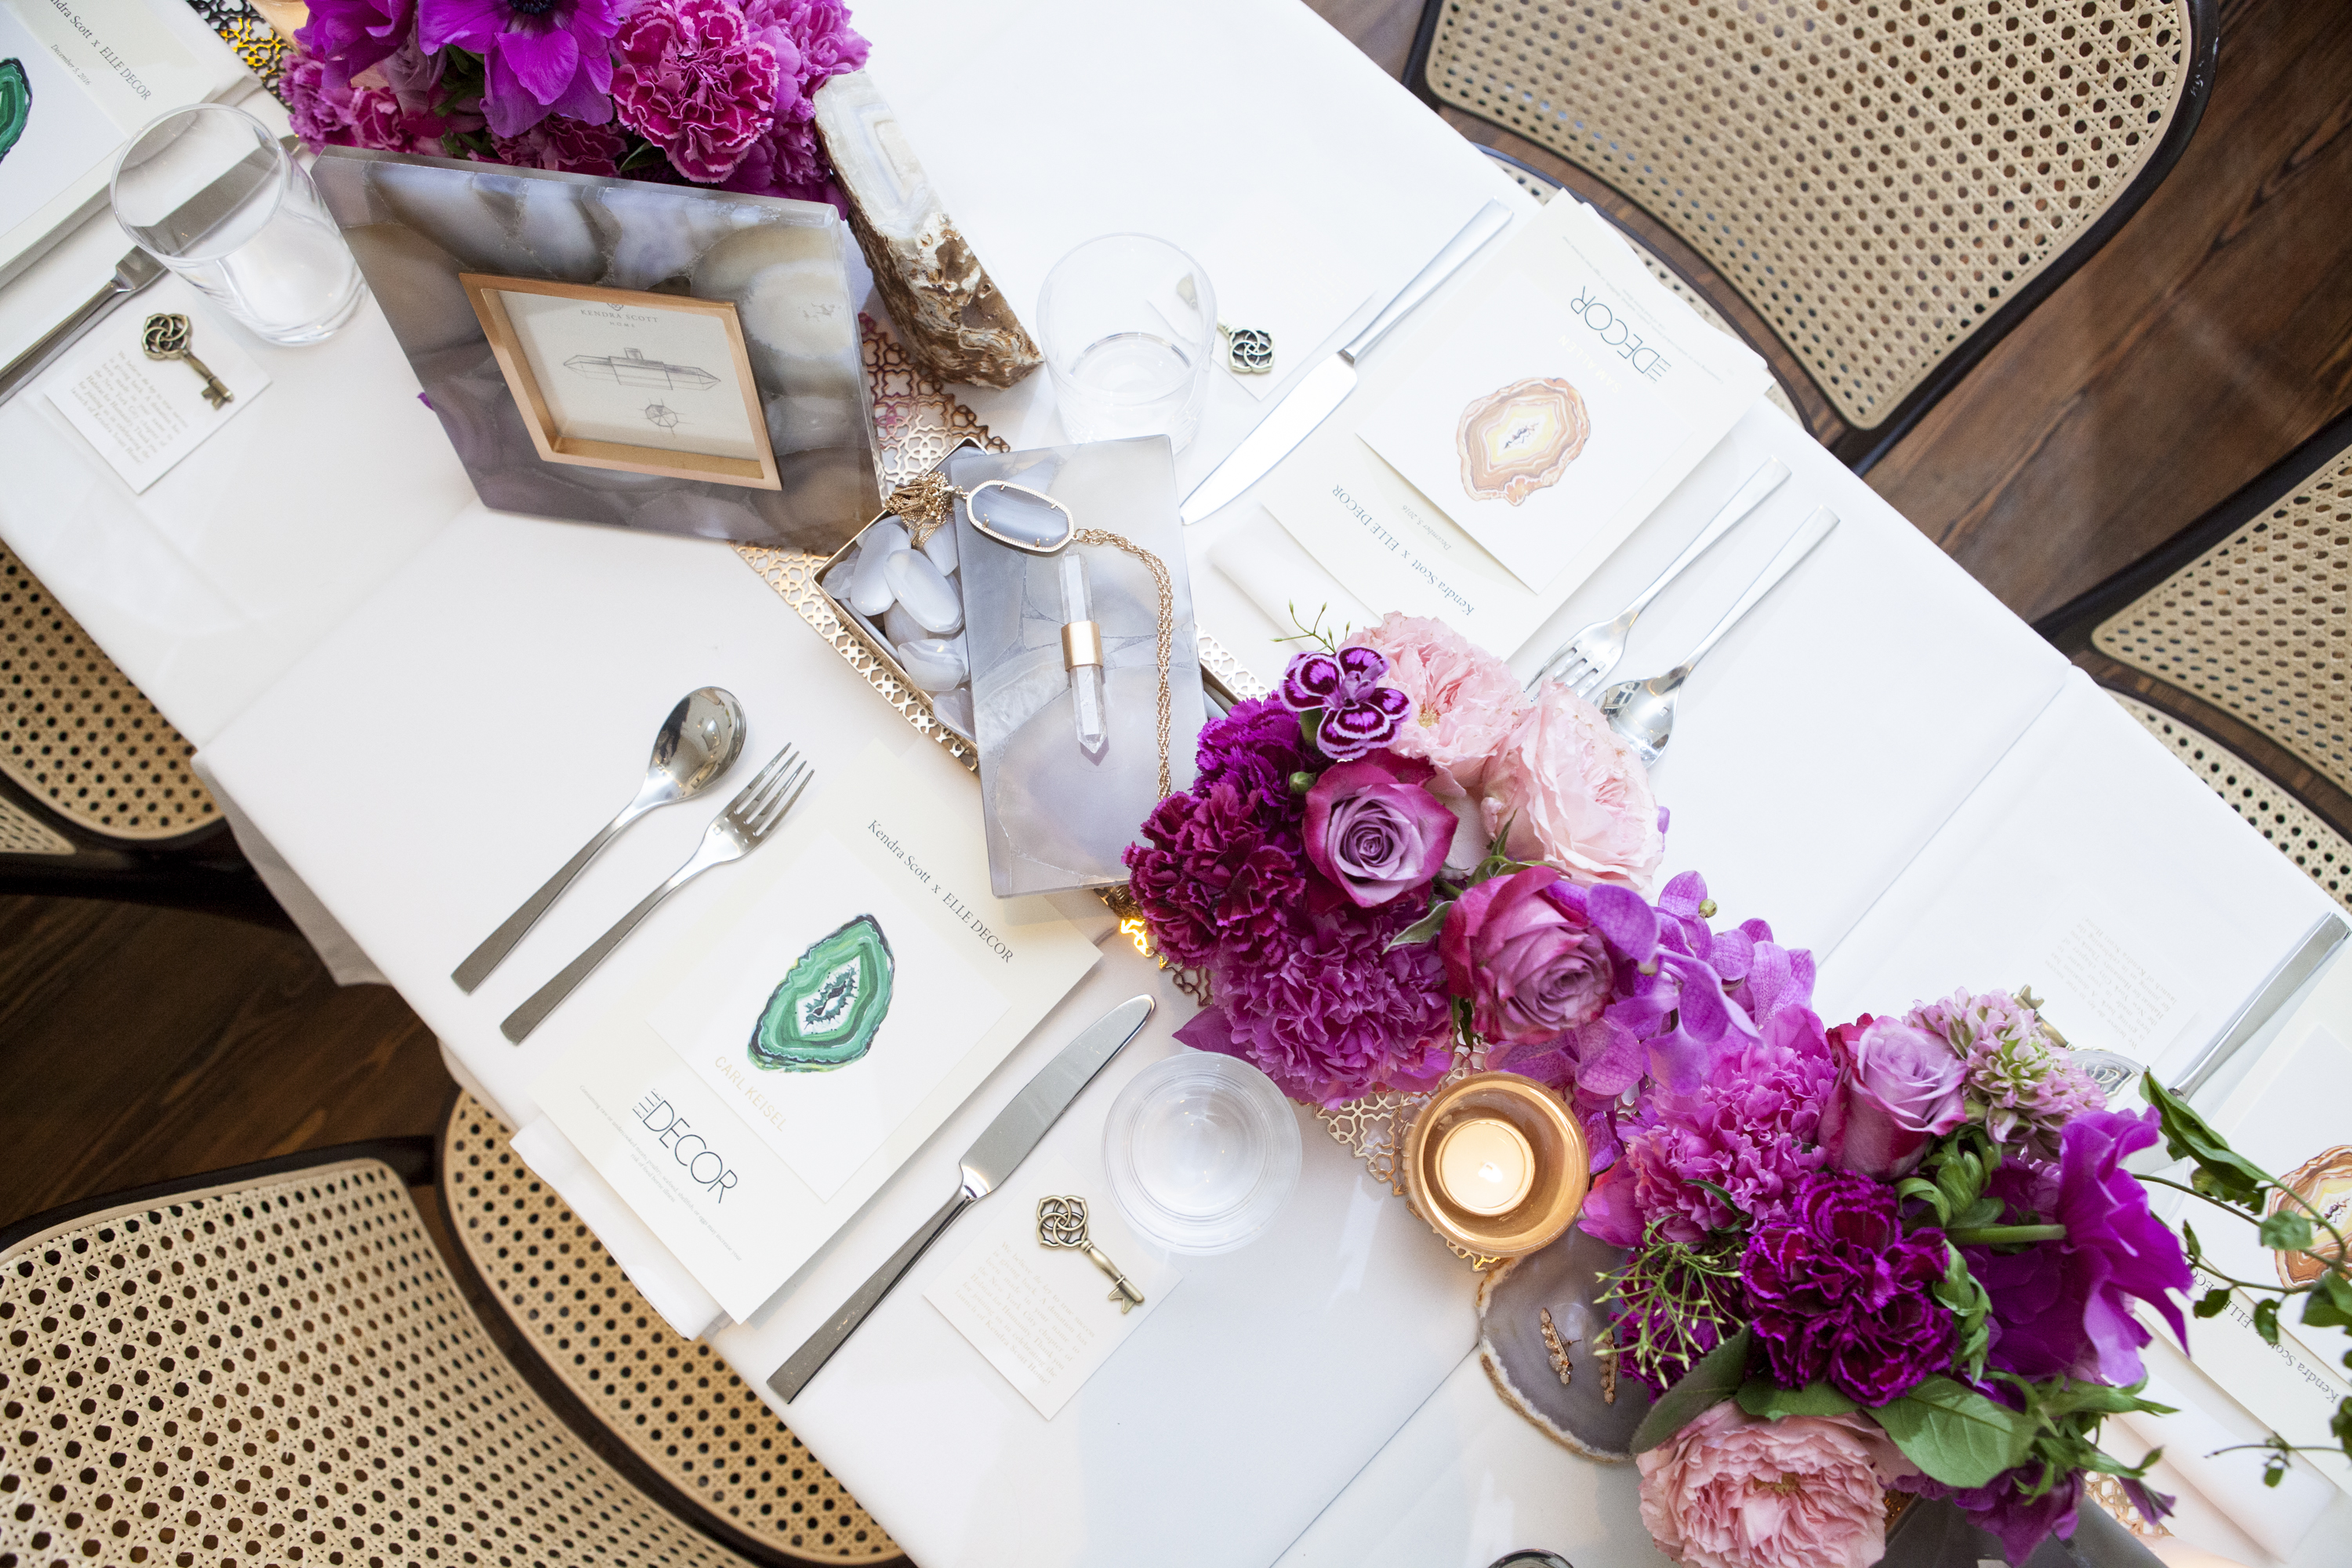 Bird's-eye view of the table setting